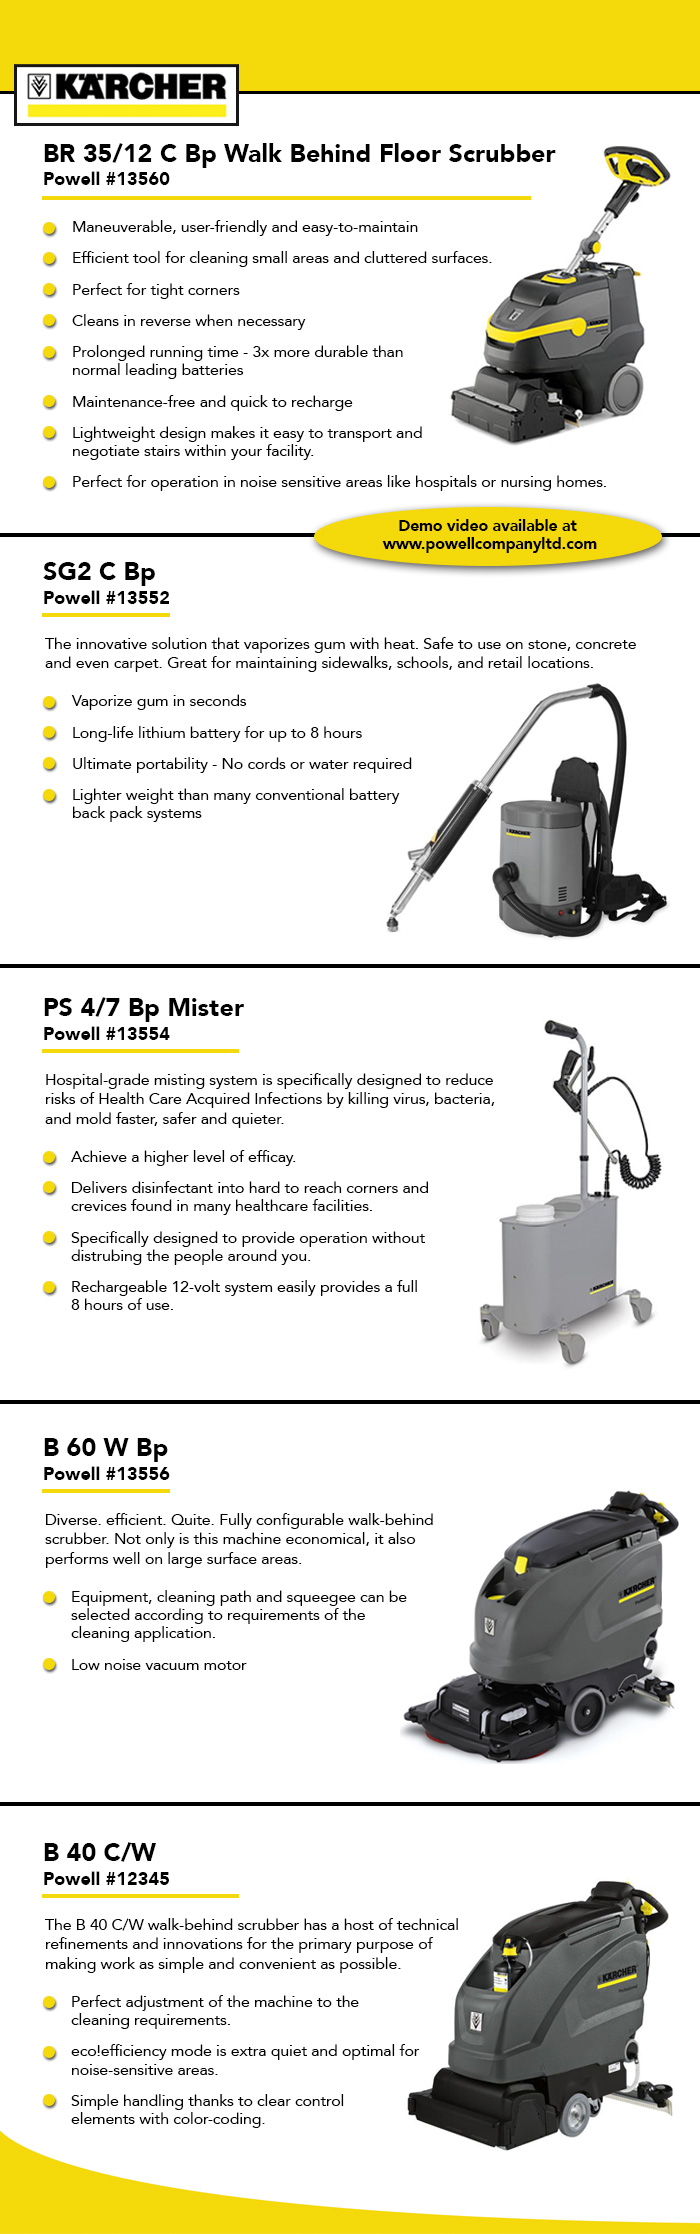 5-15 karcher equipment